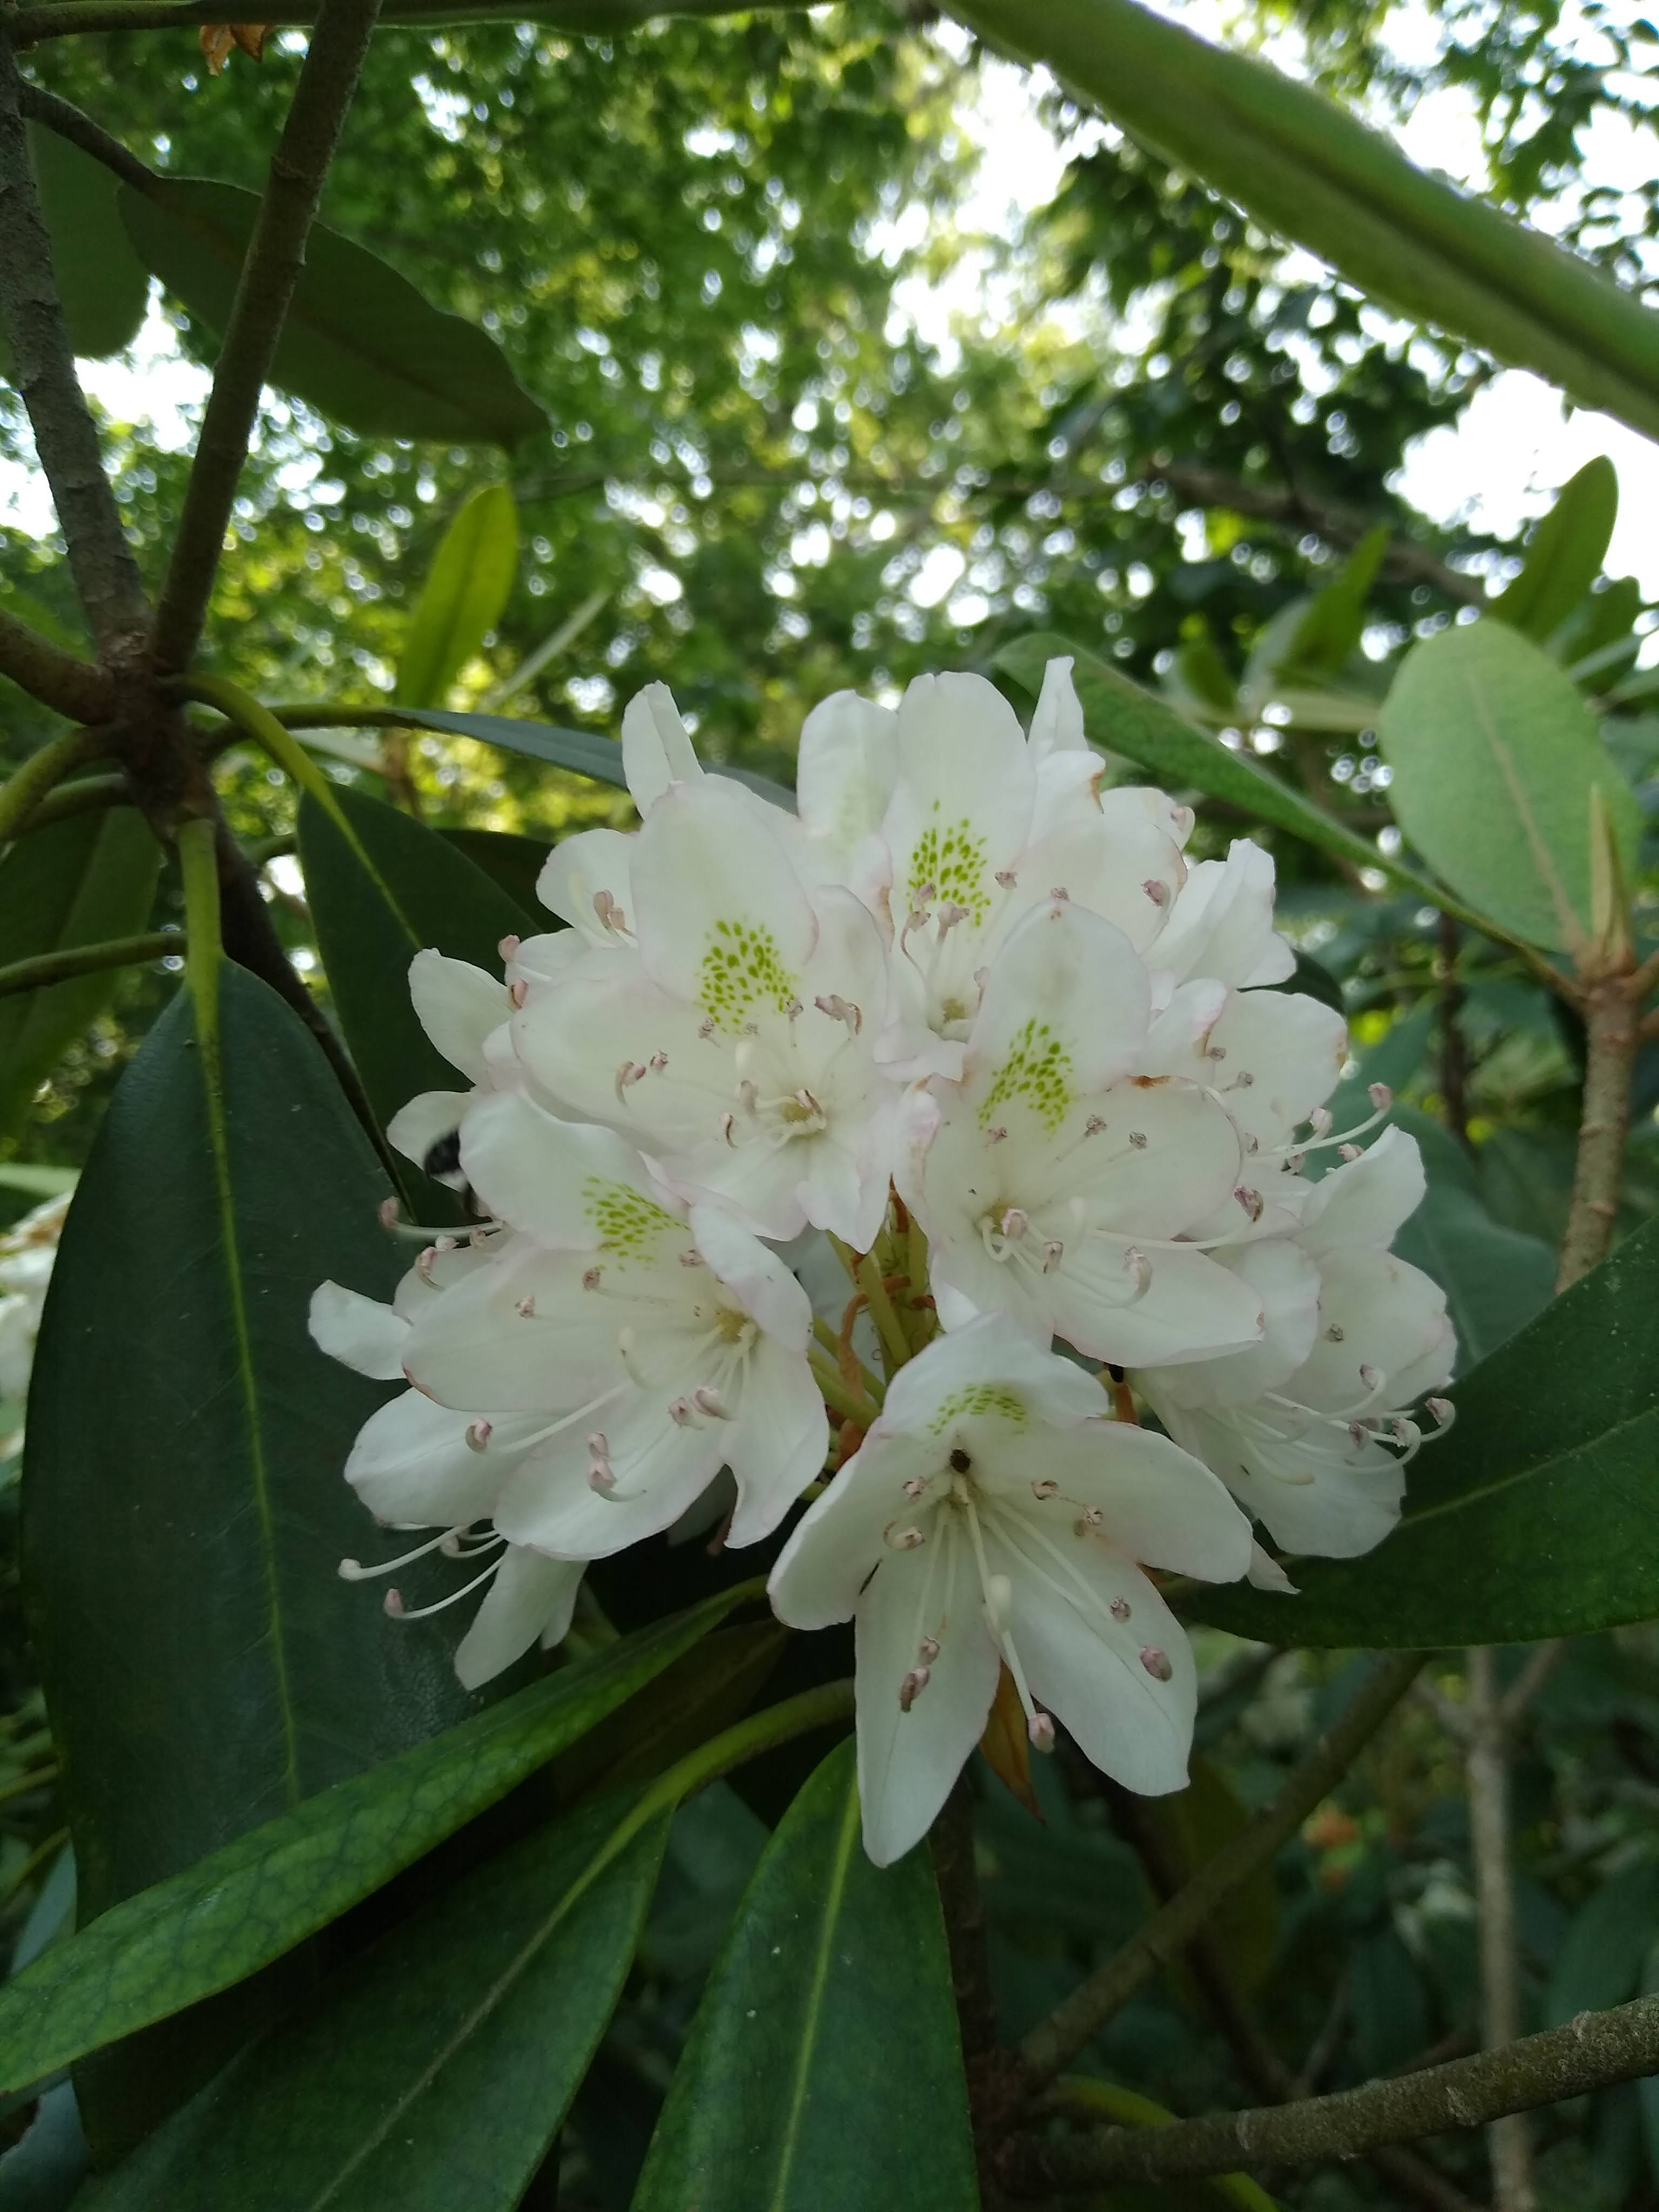 Cluster of white flowers and green leaves